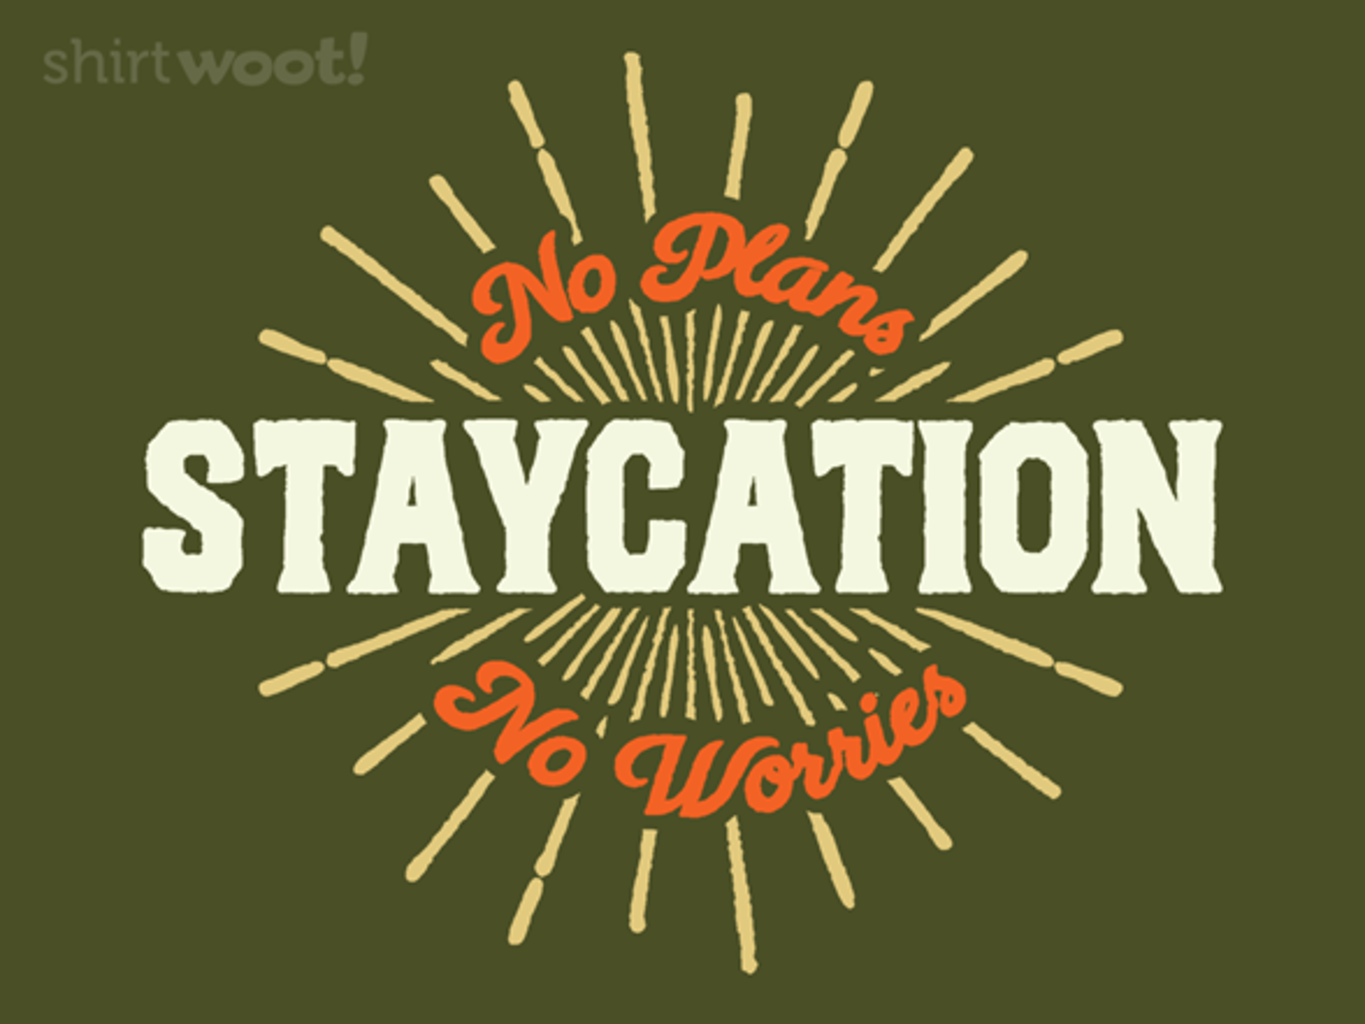 Woot!: I'm On Staycation